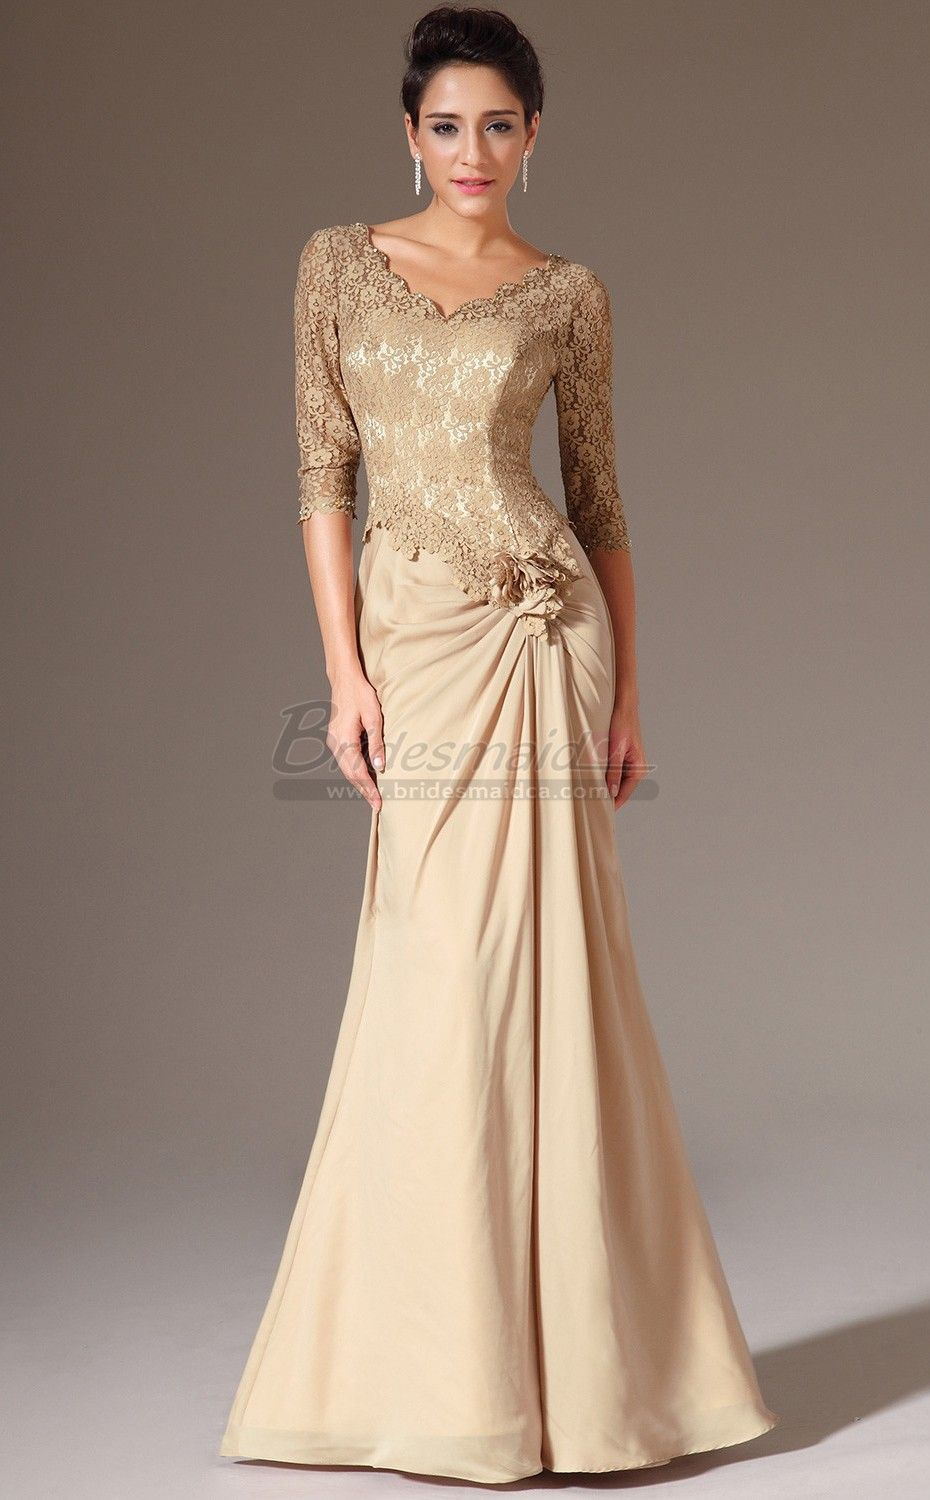 Dresses for 50th wedding anniversary party  View source image  Mother of the bride dress  Pinterest  Lace